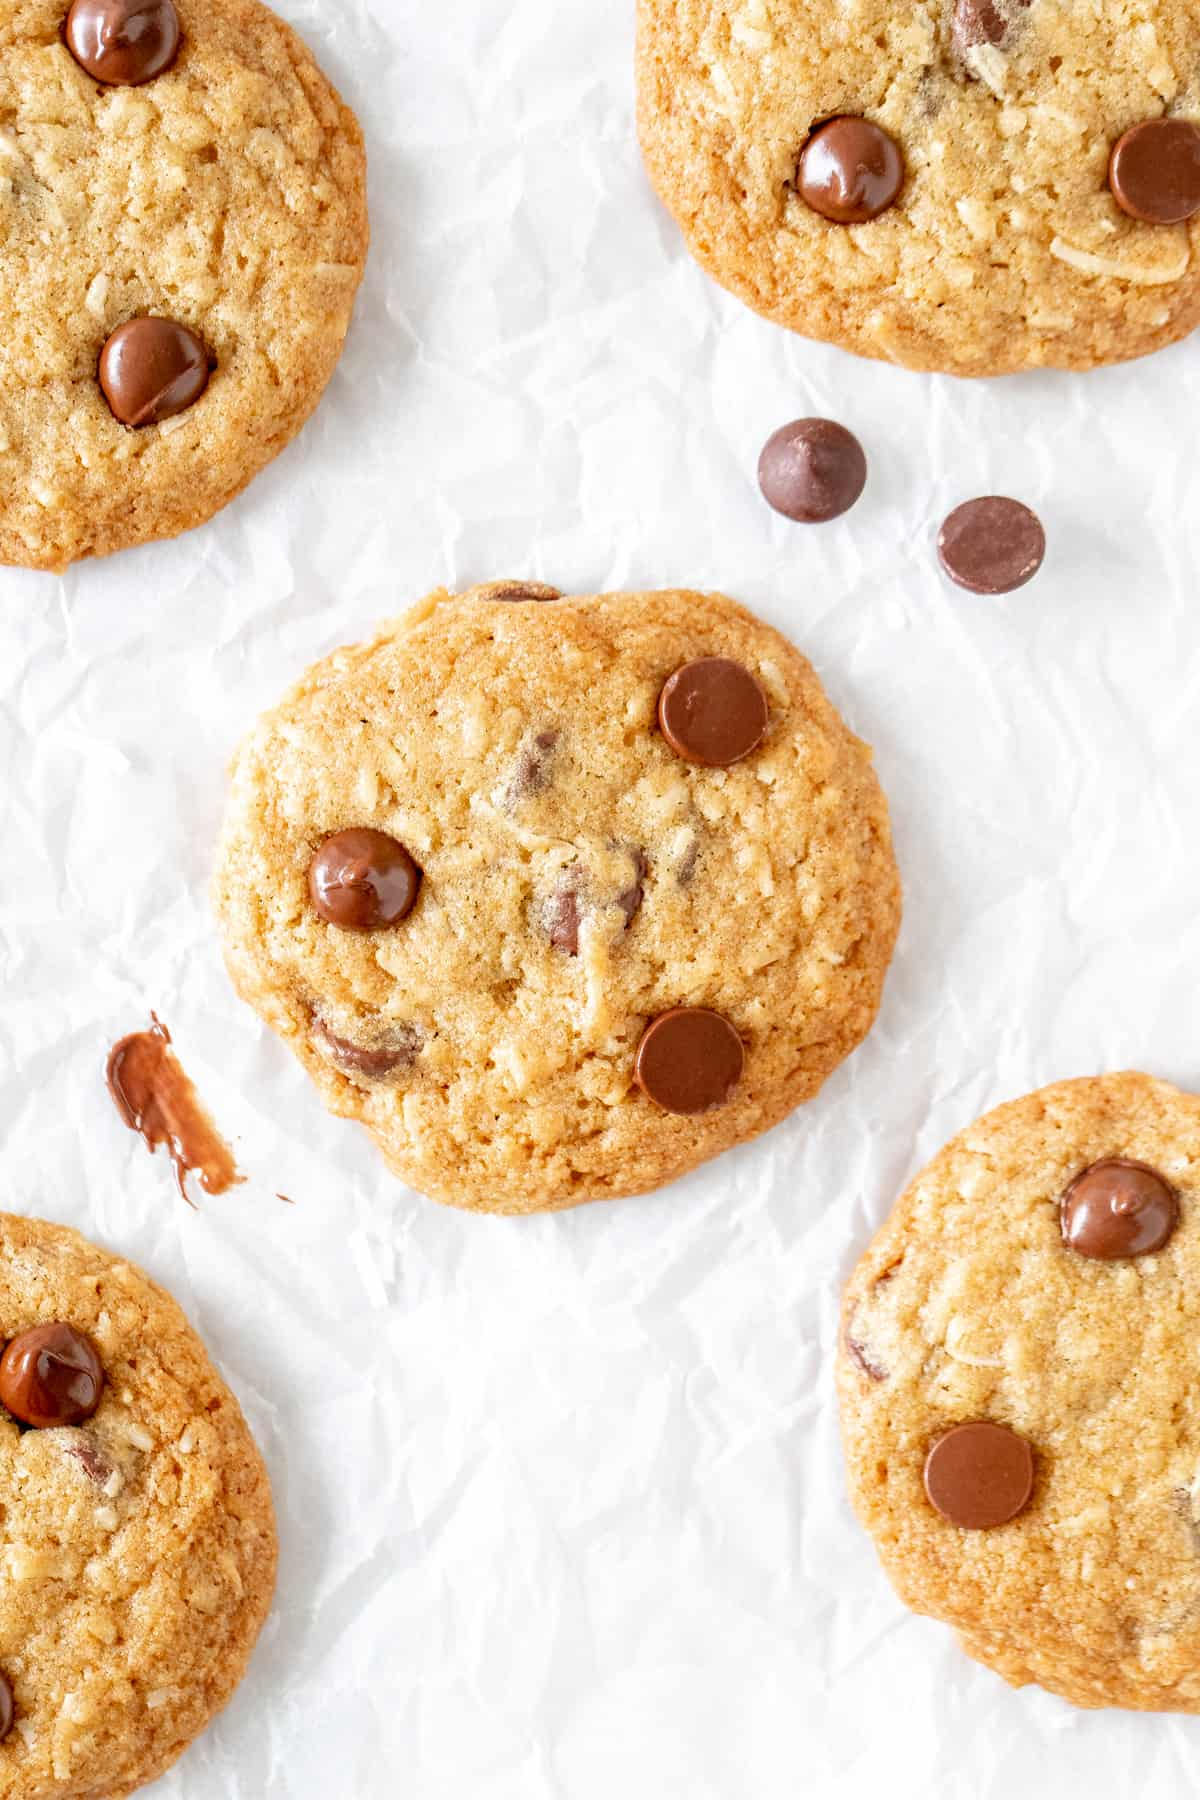 Chocolate chip cookies made with coconut